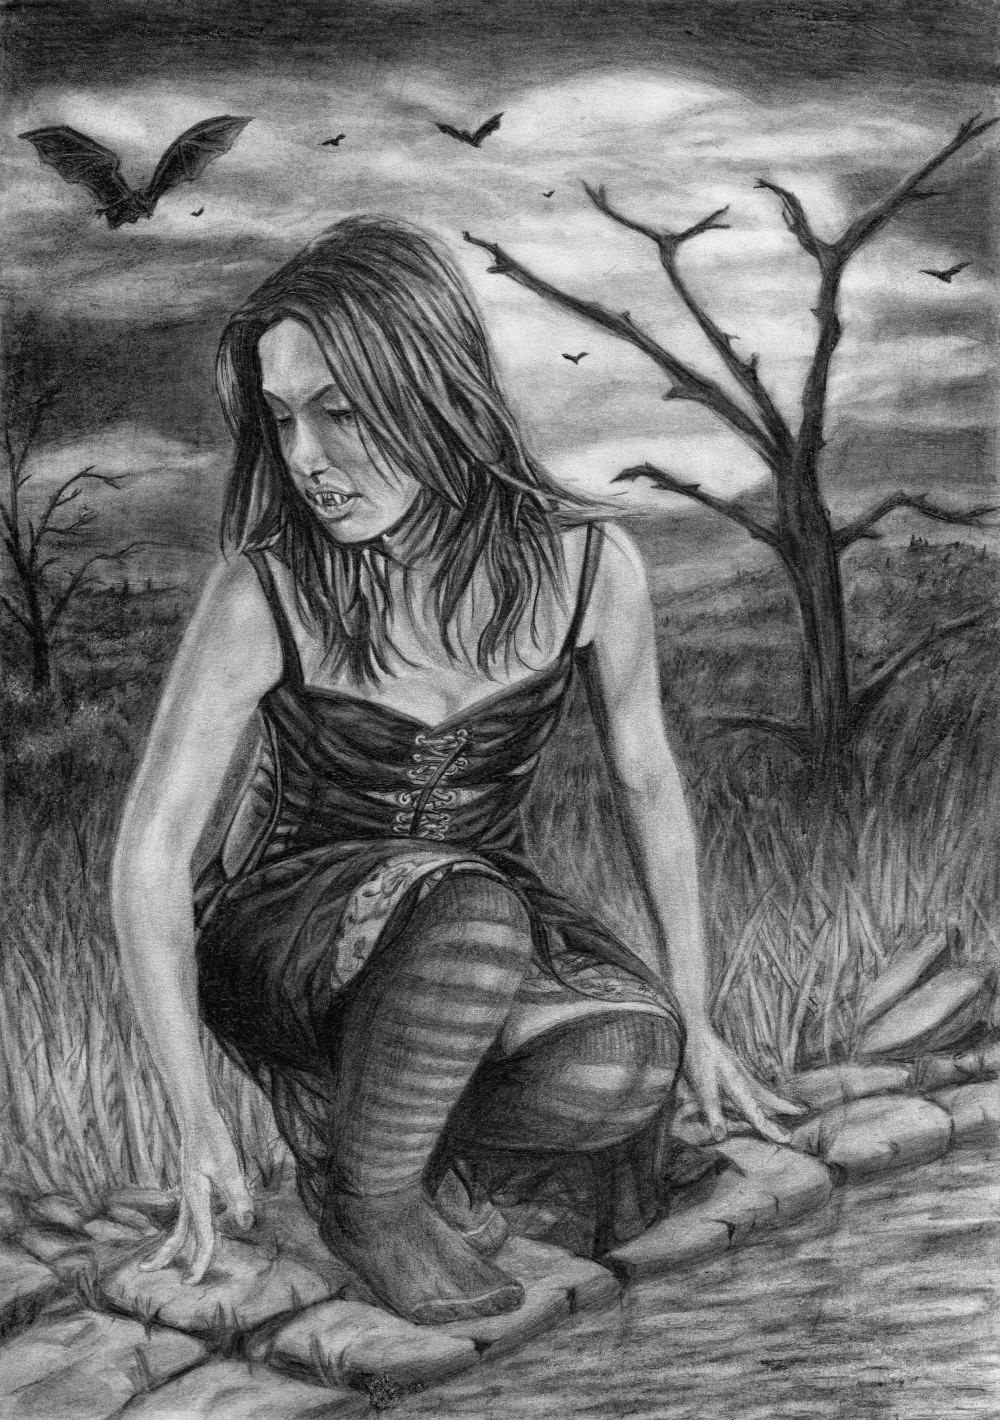 Original female vampire drawing. Gothic/fantasy art by artist Dean Sidwell